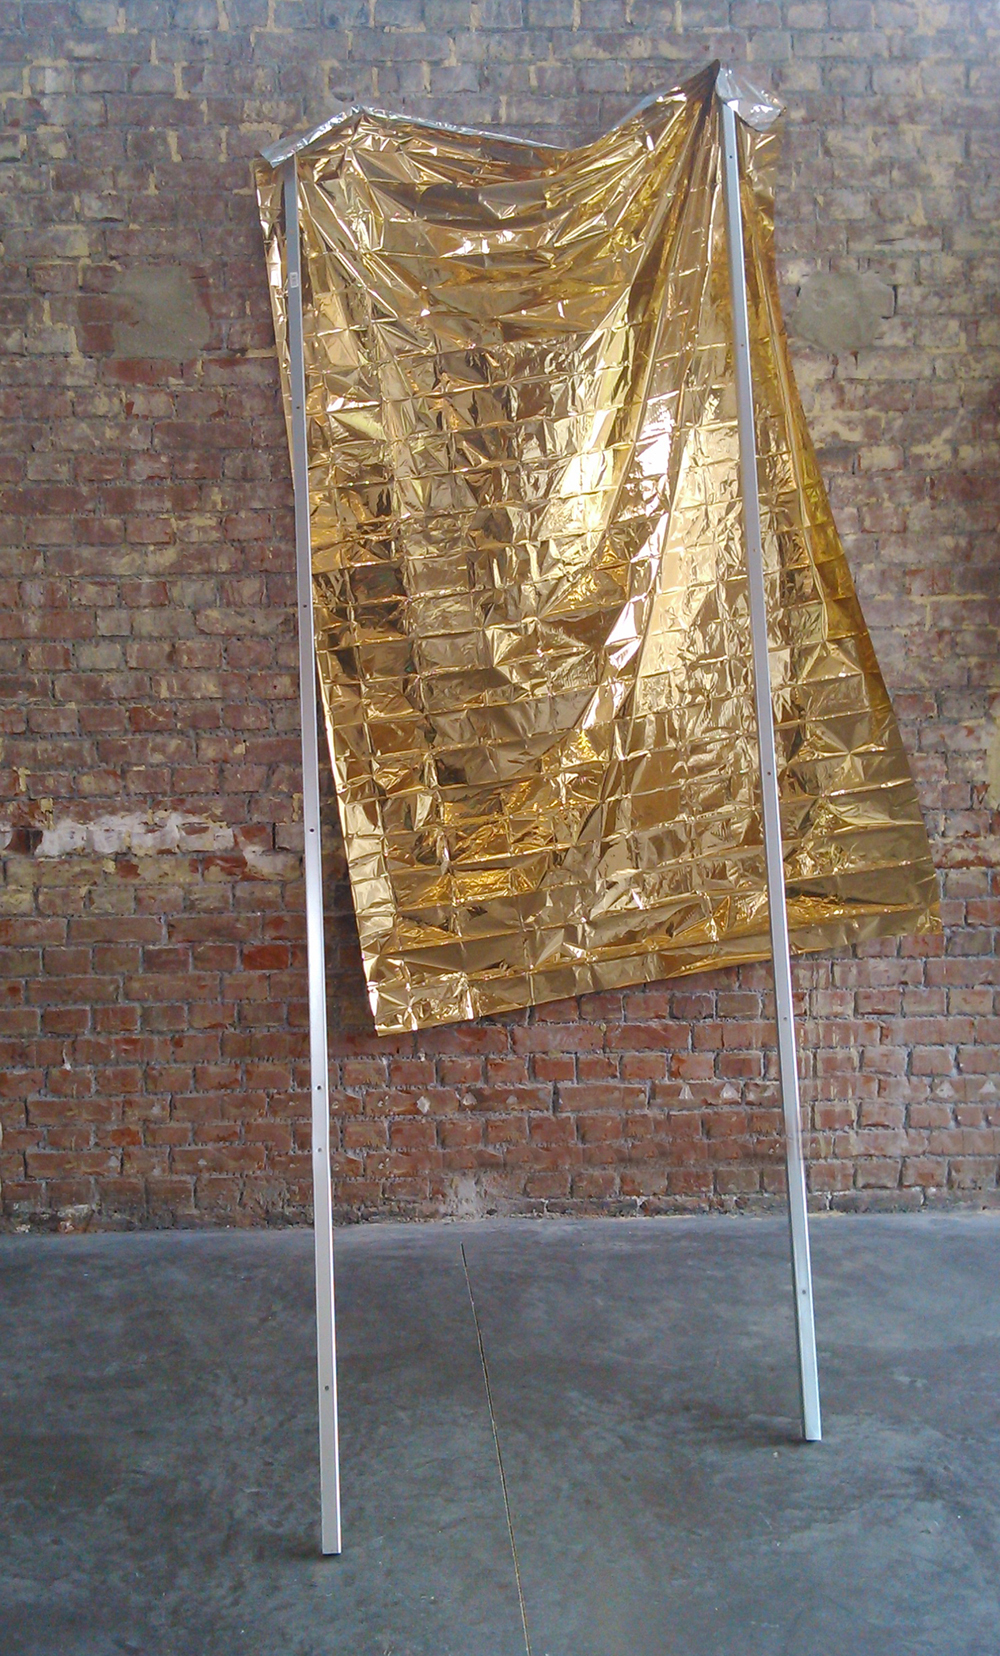 Maintien, 2015, survival blanket, metallic rails, 280 x 120 x 150 cm